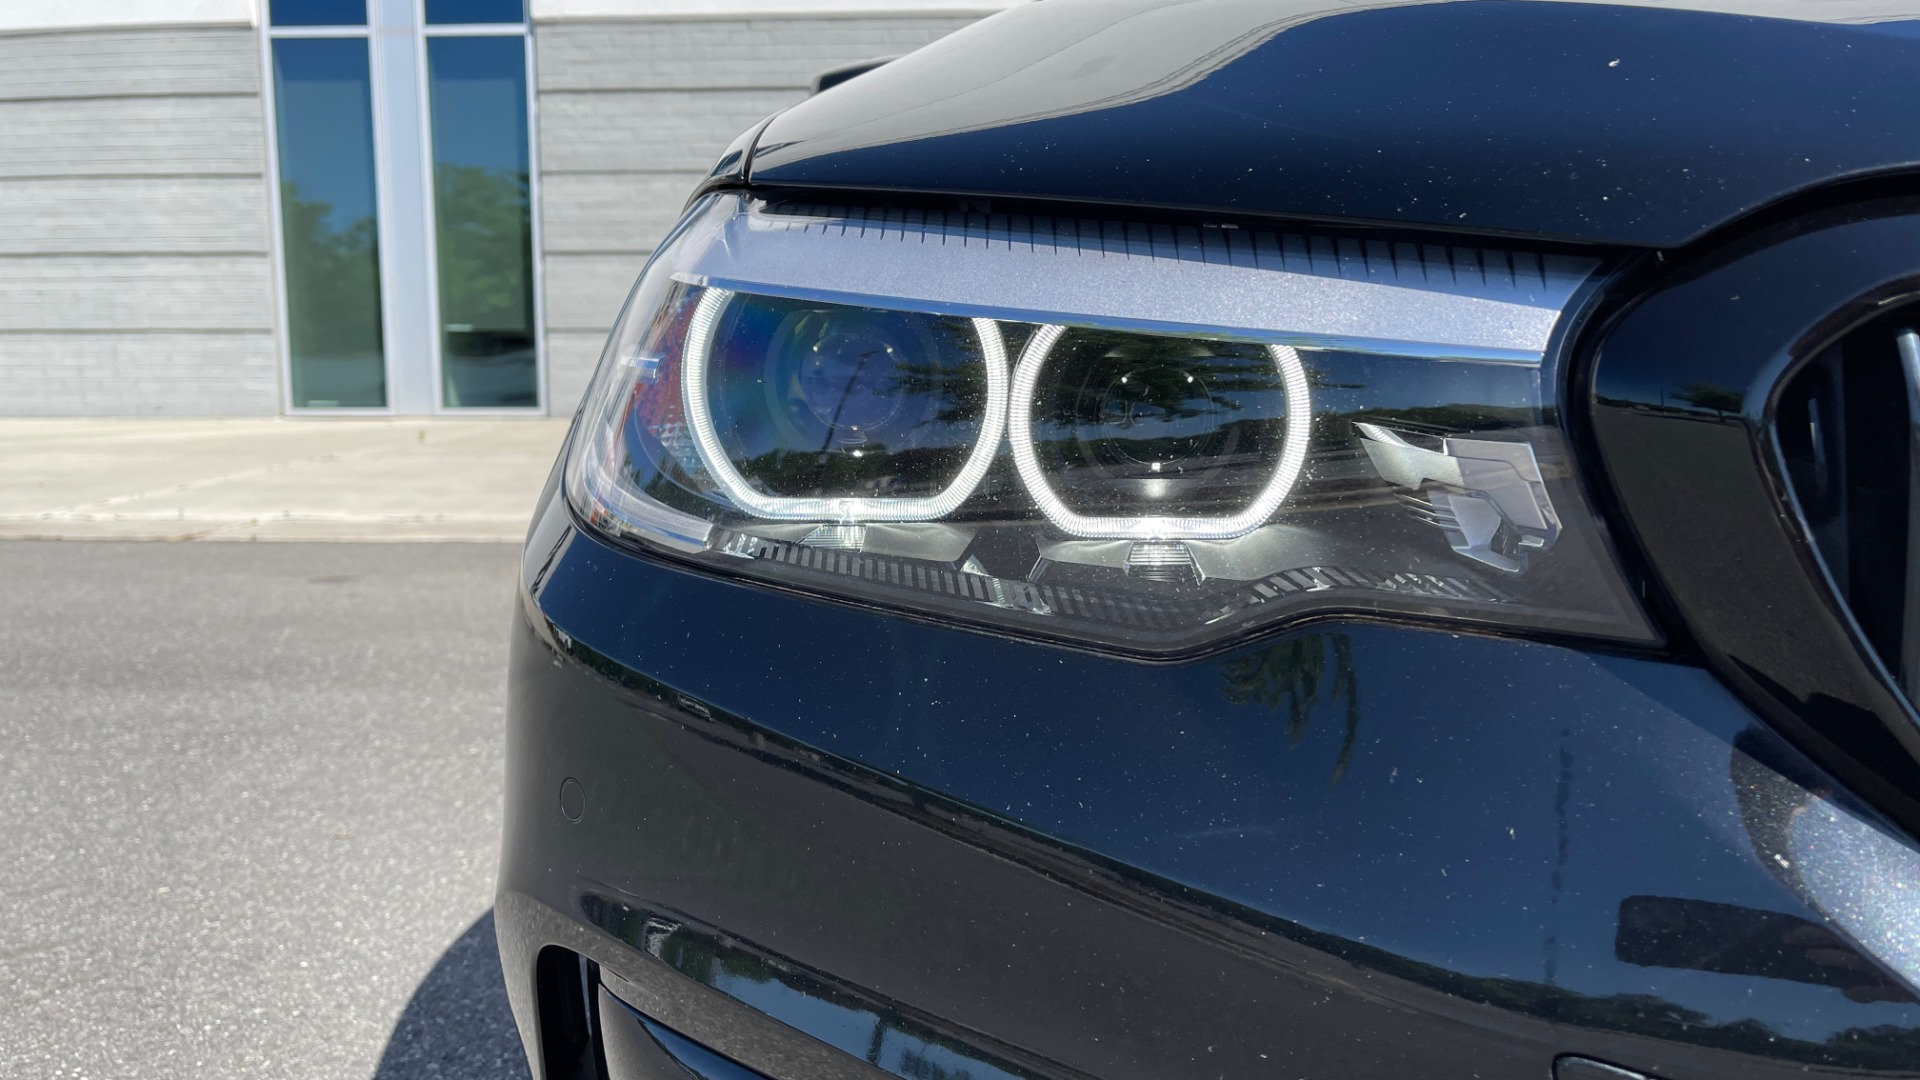 Used 2018 BMW 5 SERIES 540I XDRIVE PREMIUM / NAV / PARK ASST / WIRELESS CHARGING H/K SND for sale $38,395 at Formula Imports in Charlotte NC 28227 14